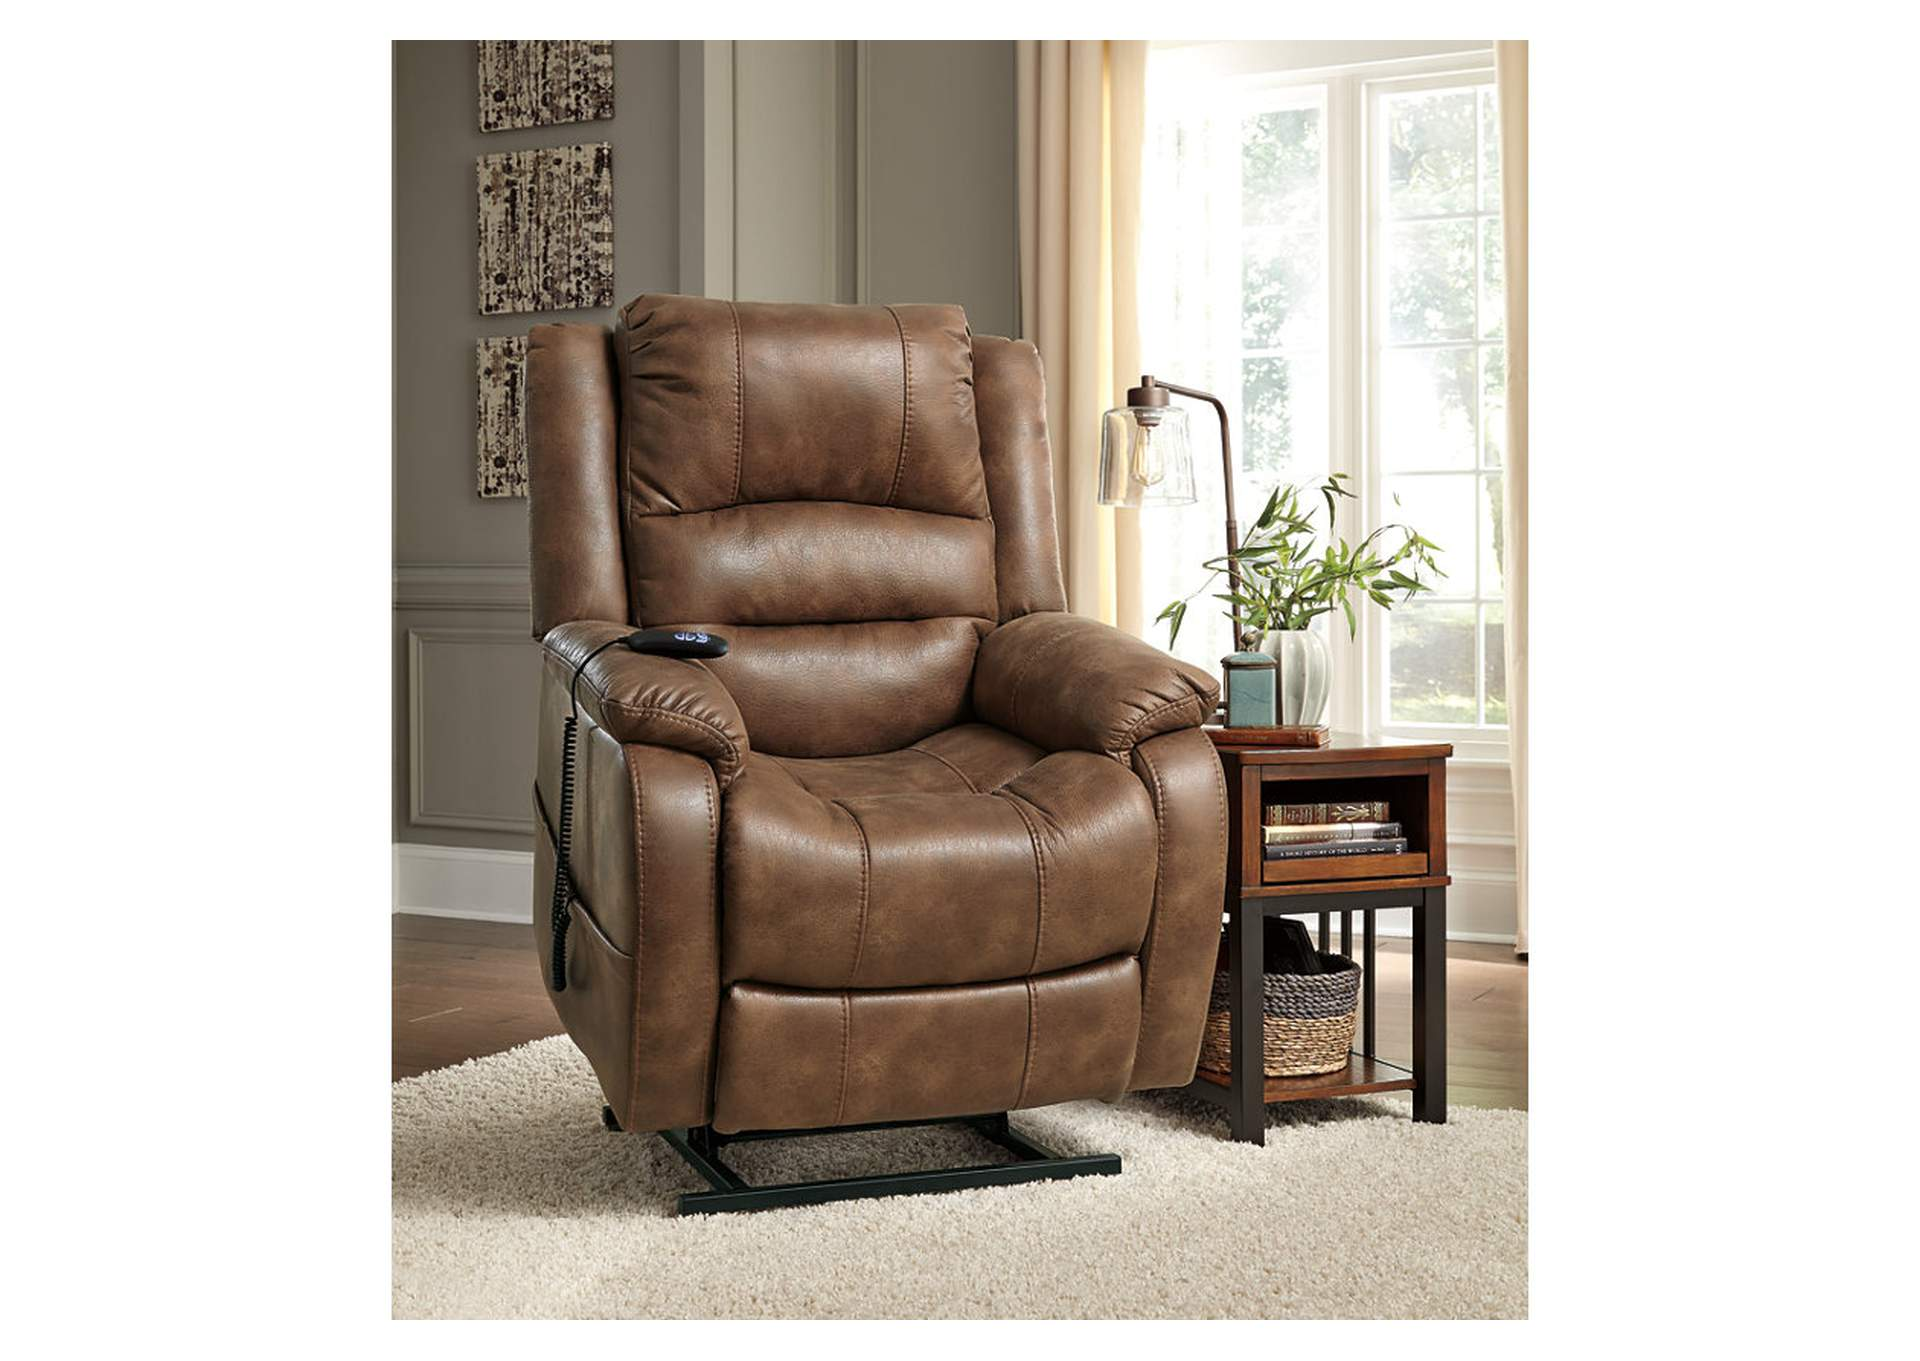 Yandel Saddle Power Lift Recliner,ABF Signature Design by Ashley